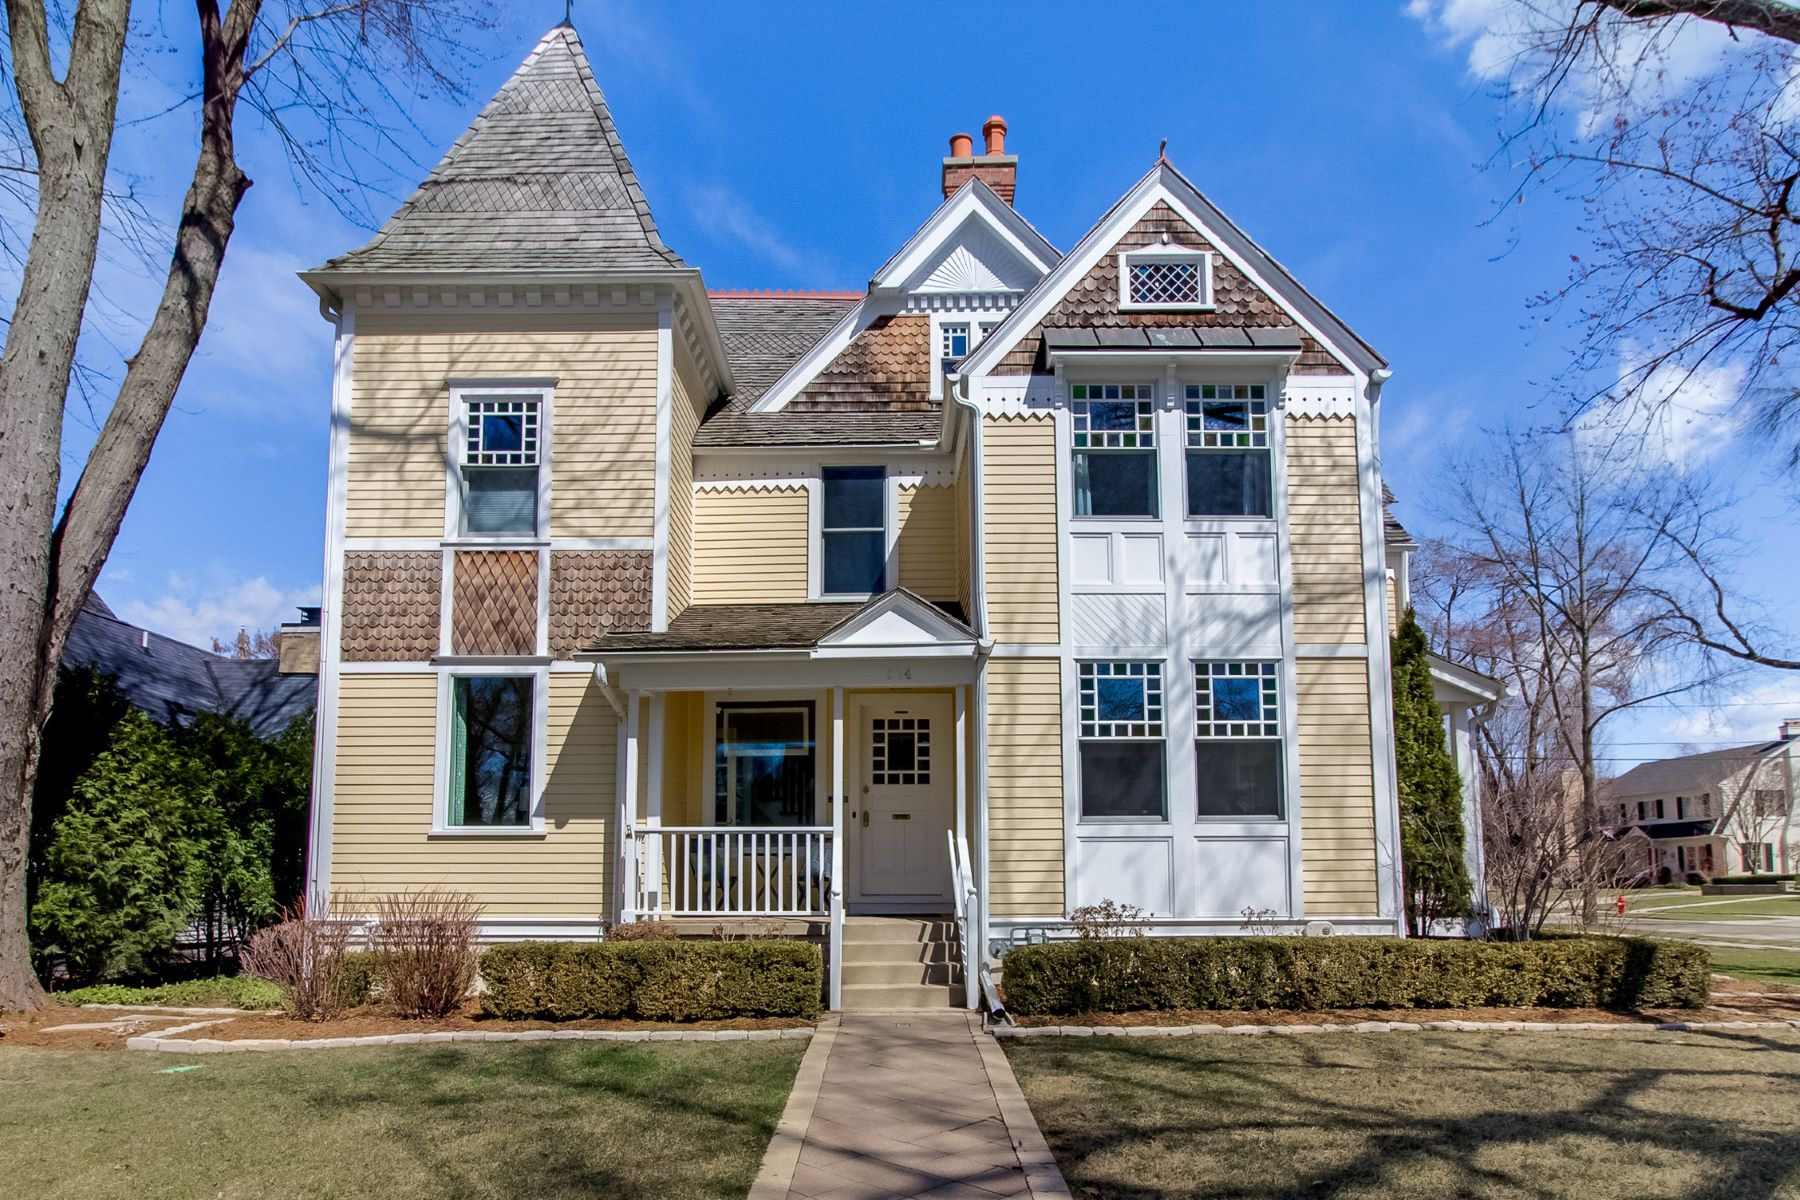 Single Family Homes for Active at 524 E Day Ave Whitefish Bay, Wisconsin 53217 United States